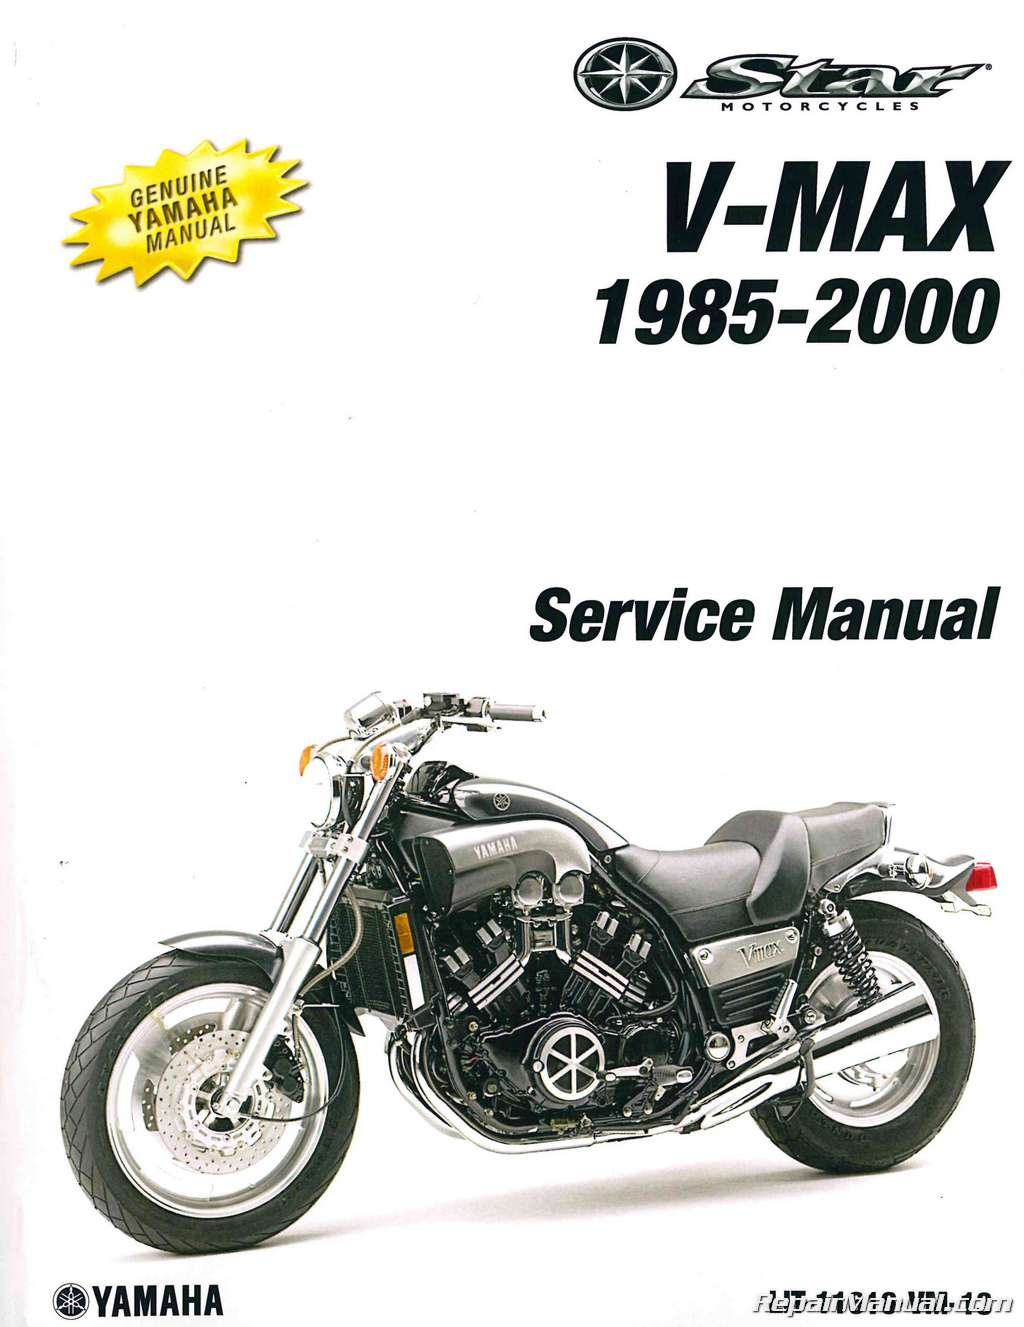 hight resolution of yamaha vmax wiring diagram 1985 2000 yamaha vmx1200 vmax motorcycle service manual1985 2000 yamaha vmx1200 vmax